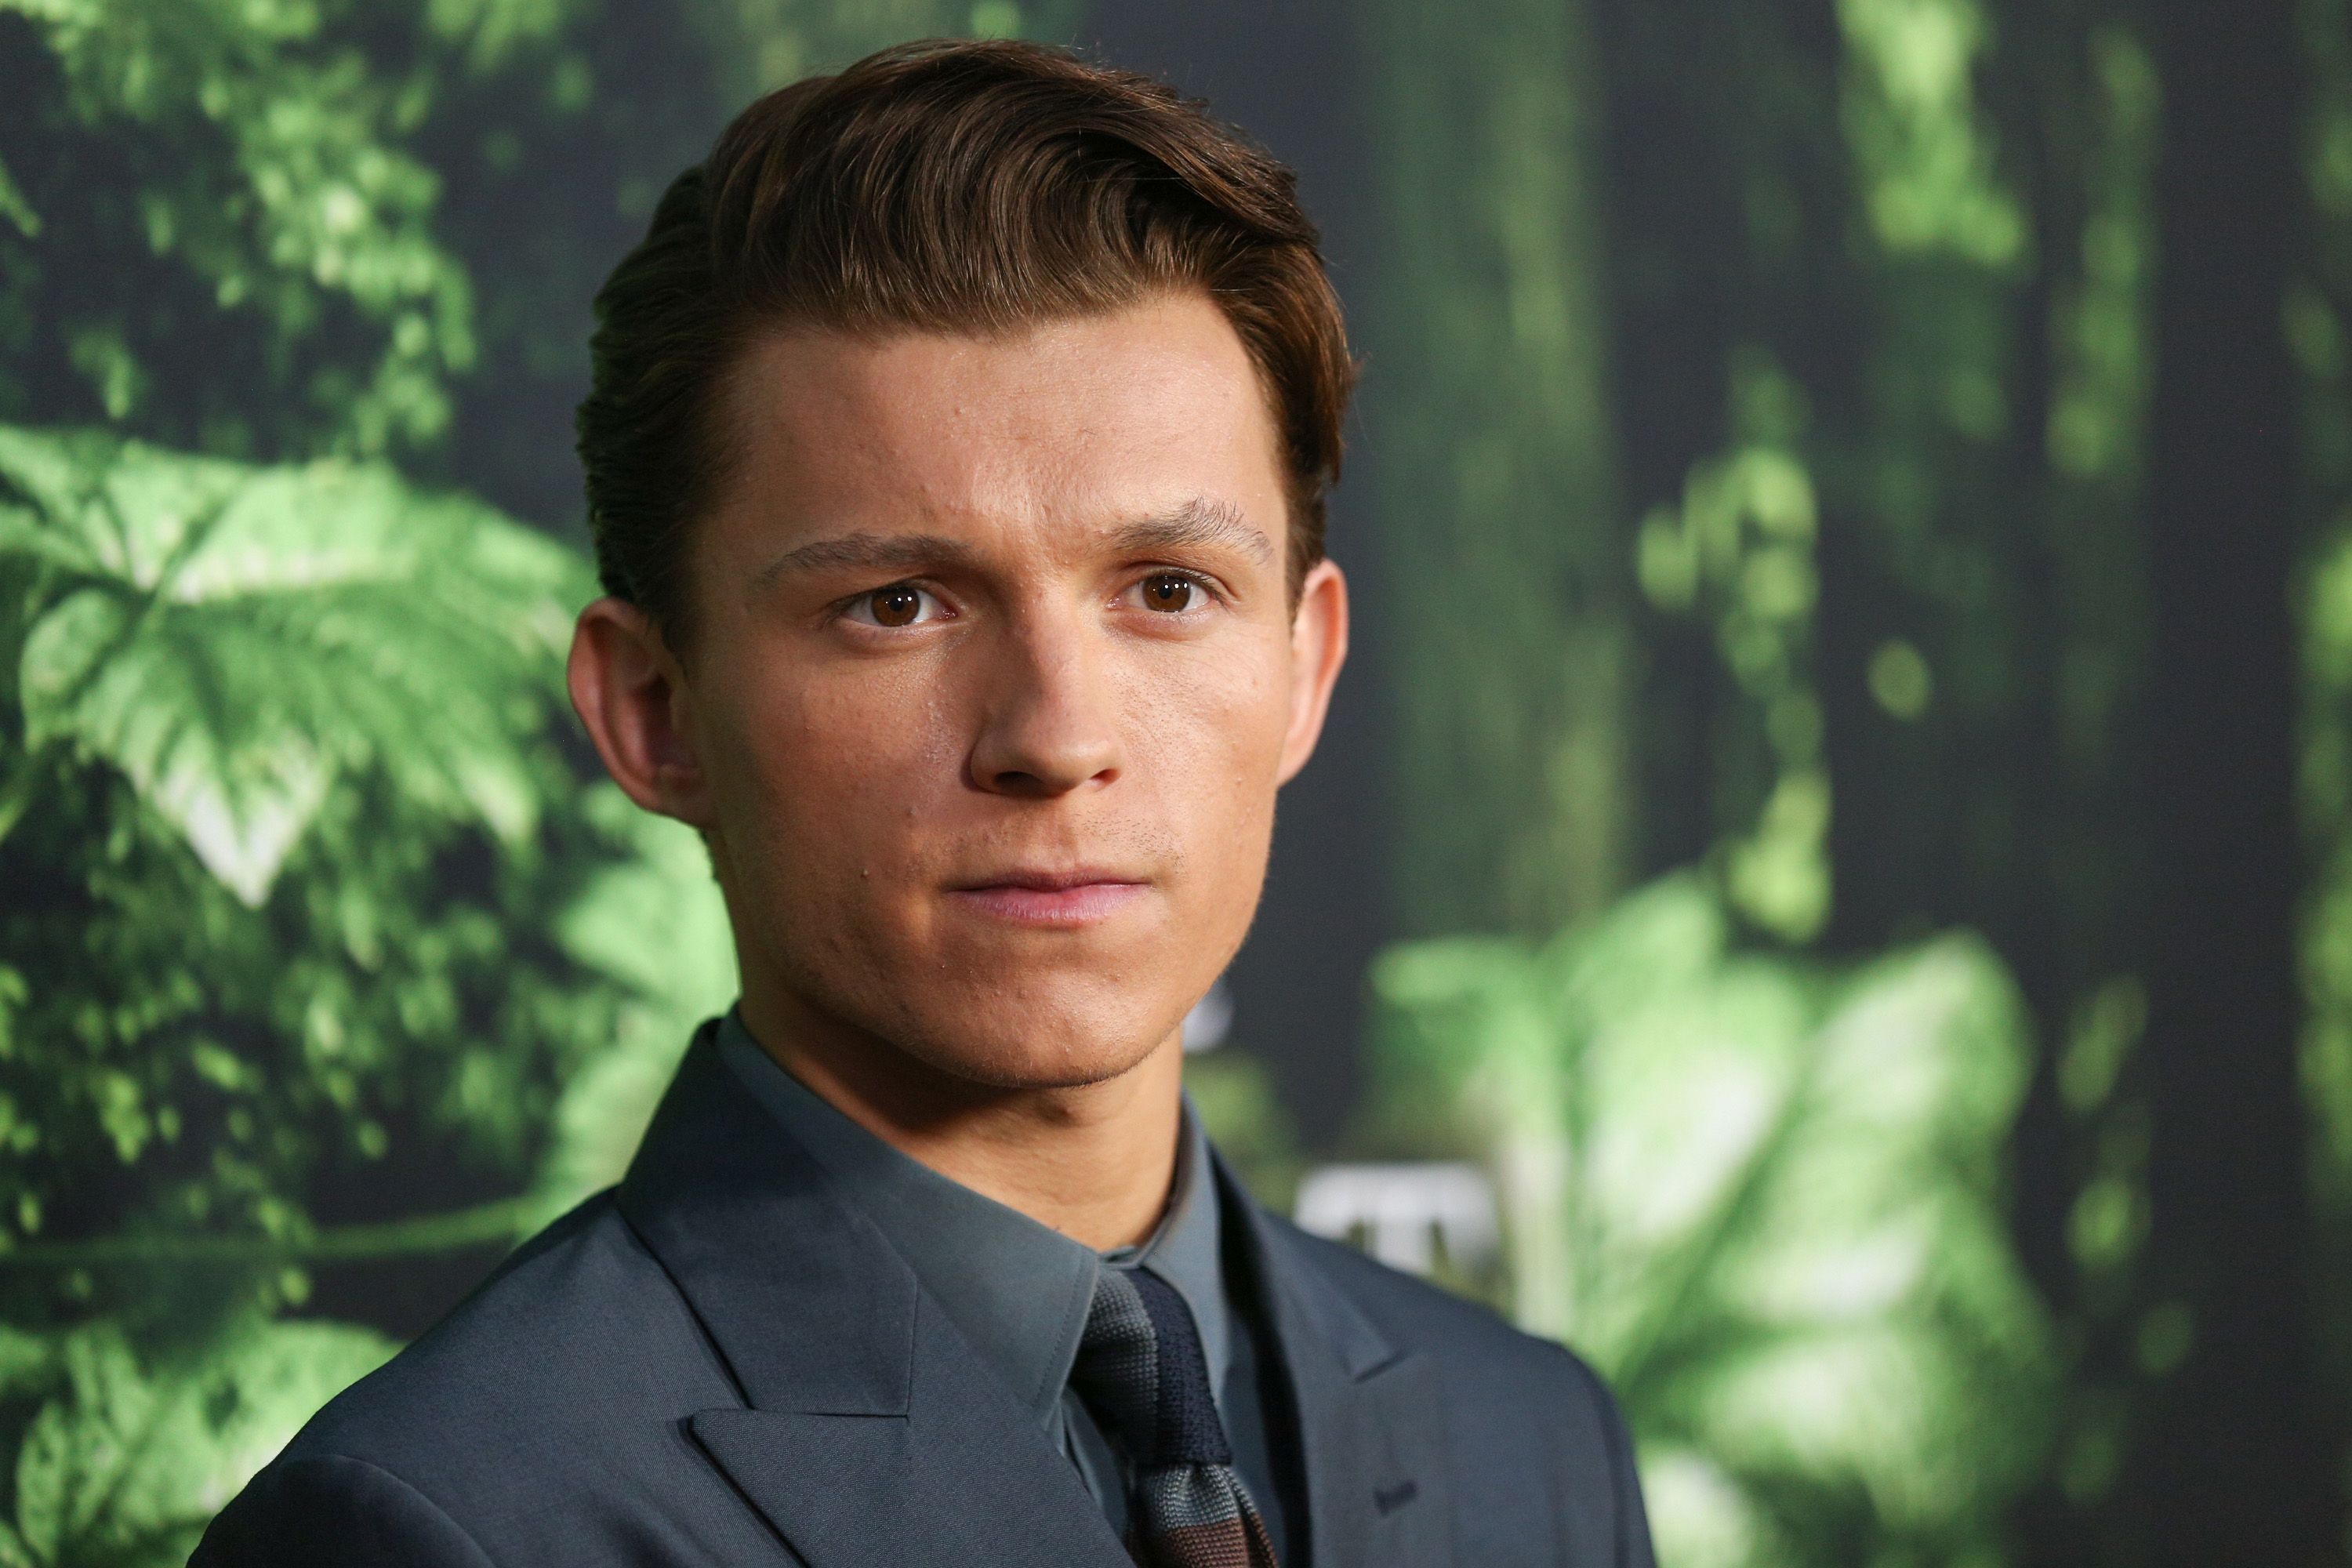 actor tom holland attends the premiere of amazon studios news photo 1570541683 20 Things You Probably Never Knew About Tom Holland